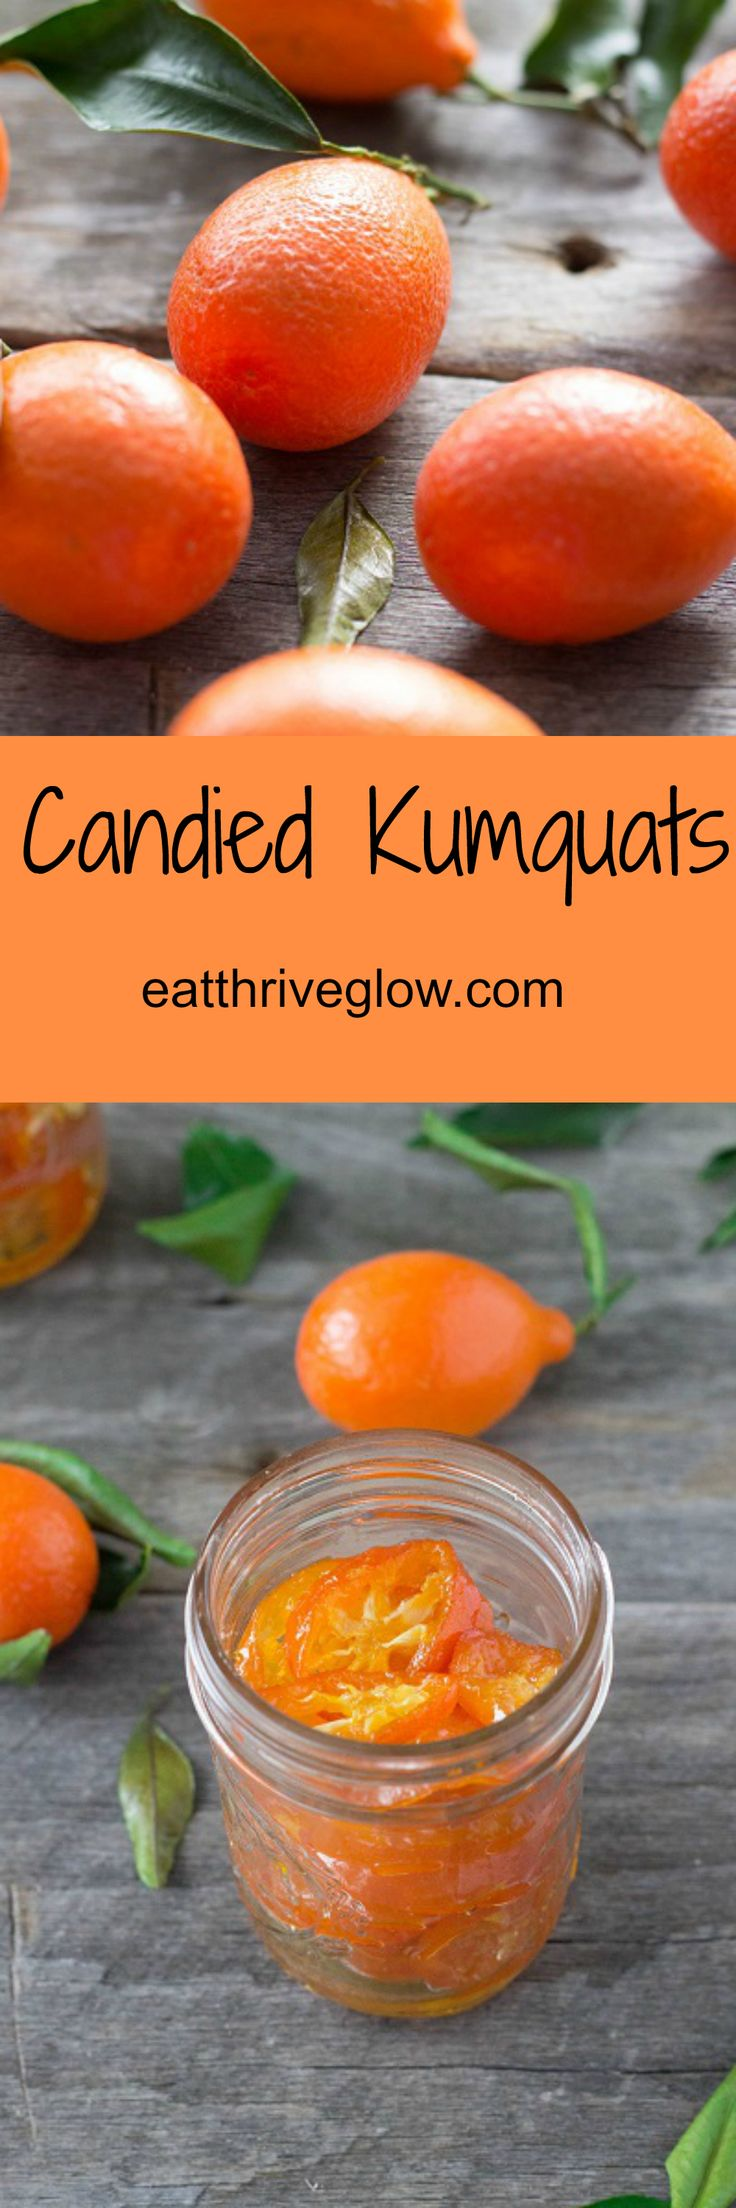 Candied kumquats recipe. Sweet, tart, & tangy all at once! Perfect citrus simple syrup for drinks and cocktails. Can also use orangequats.